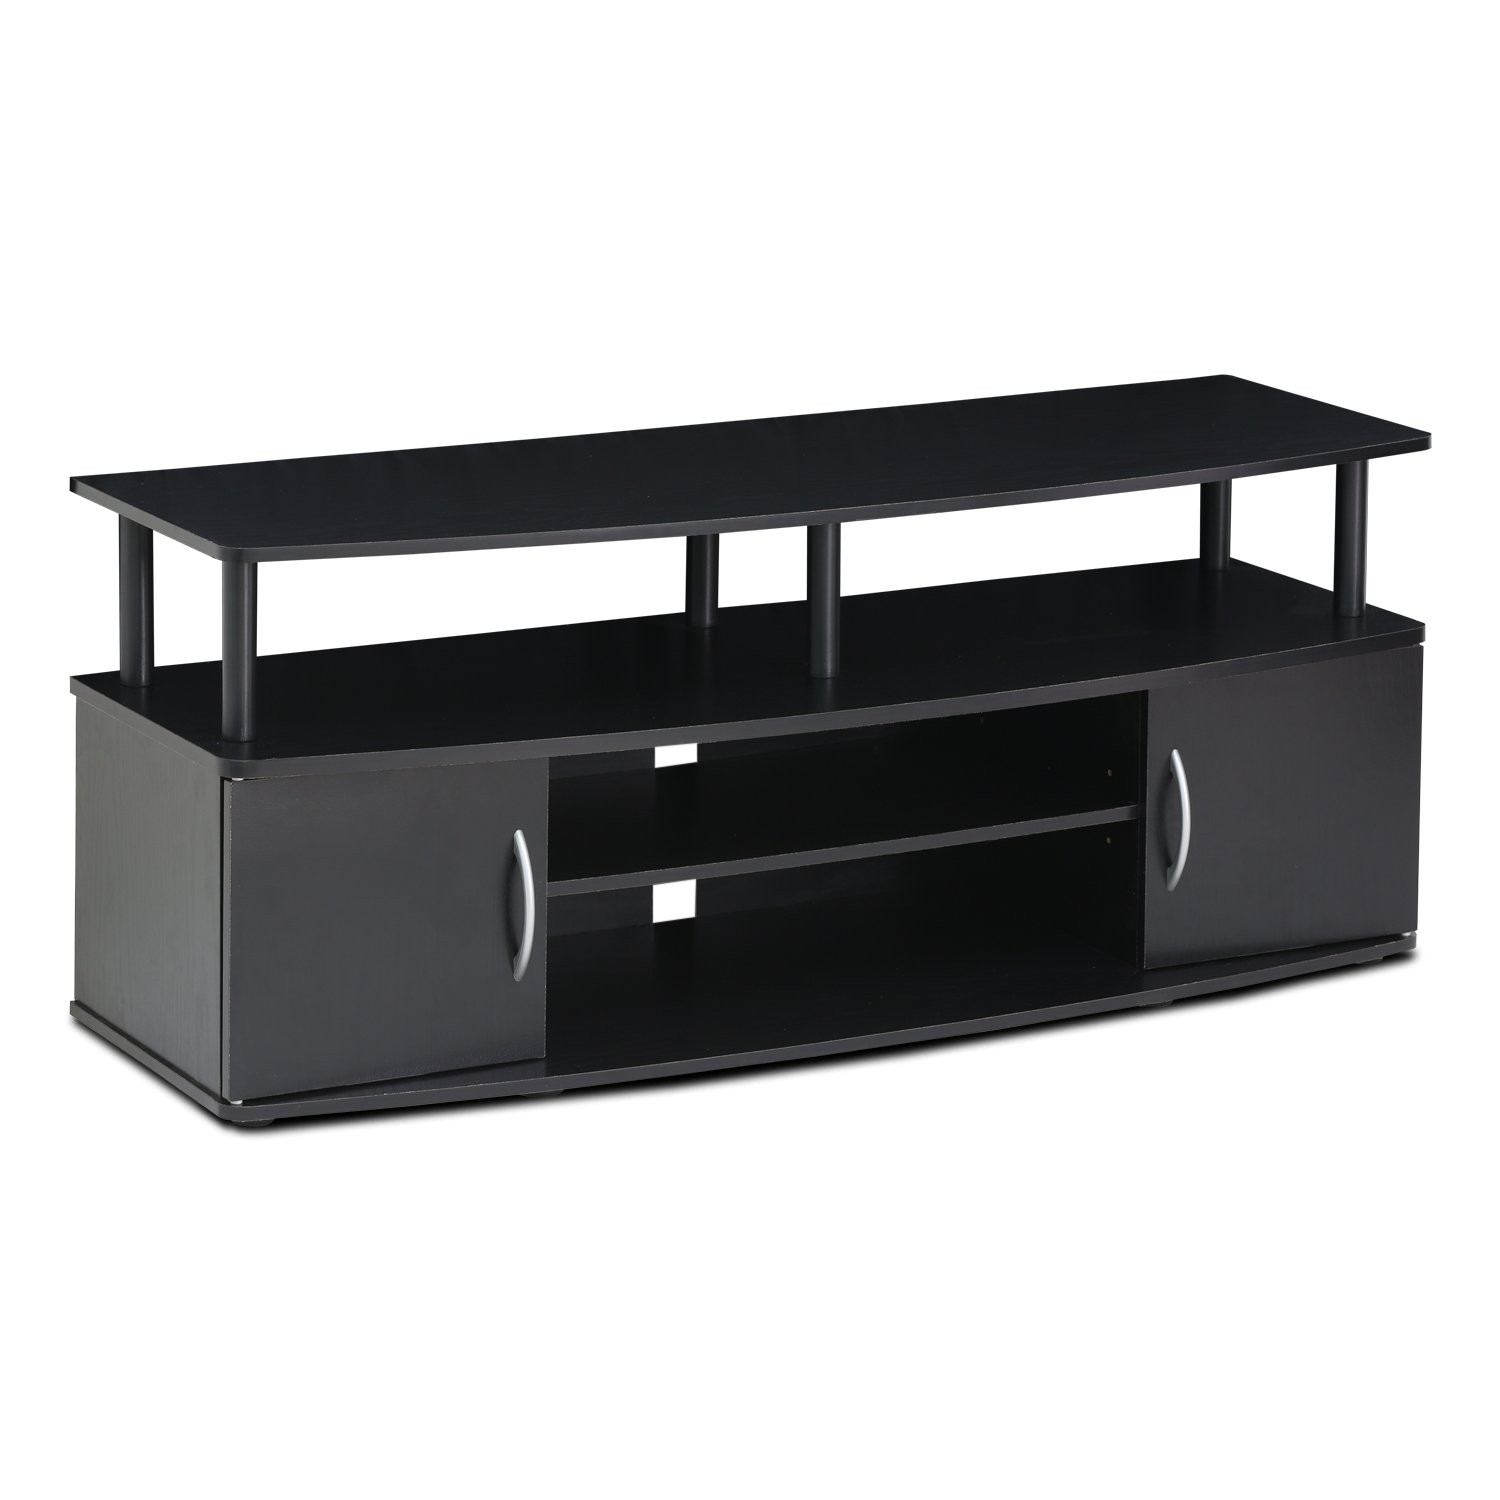 50 Inch Entertainment Center Part - 47: Amazon.com: FURINNO Furinno JAYA Large Entertainment Center Hold Up To 50-IN  TV, 15113BKW: Kitchen U0026 Dining